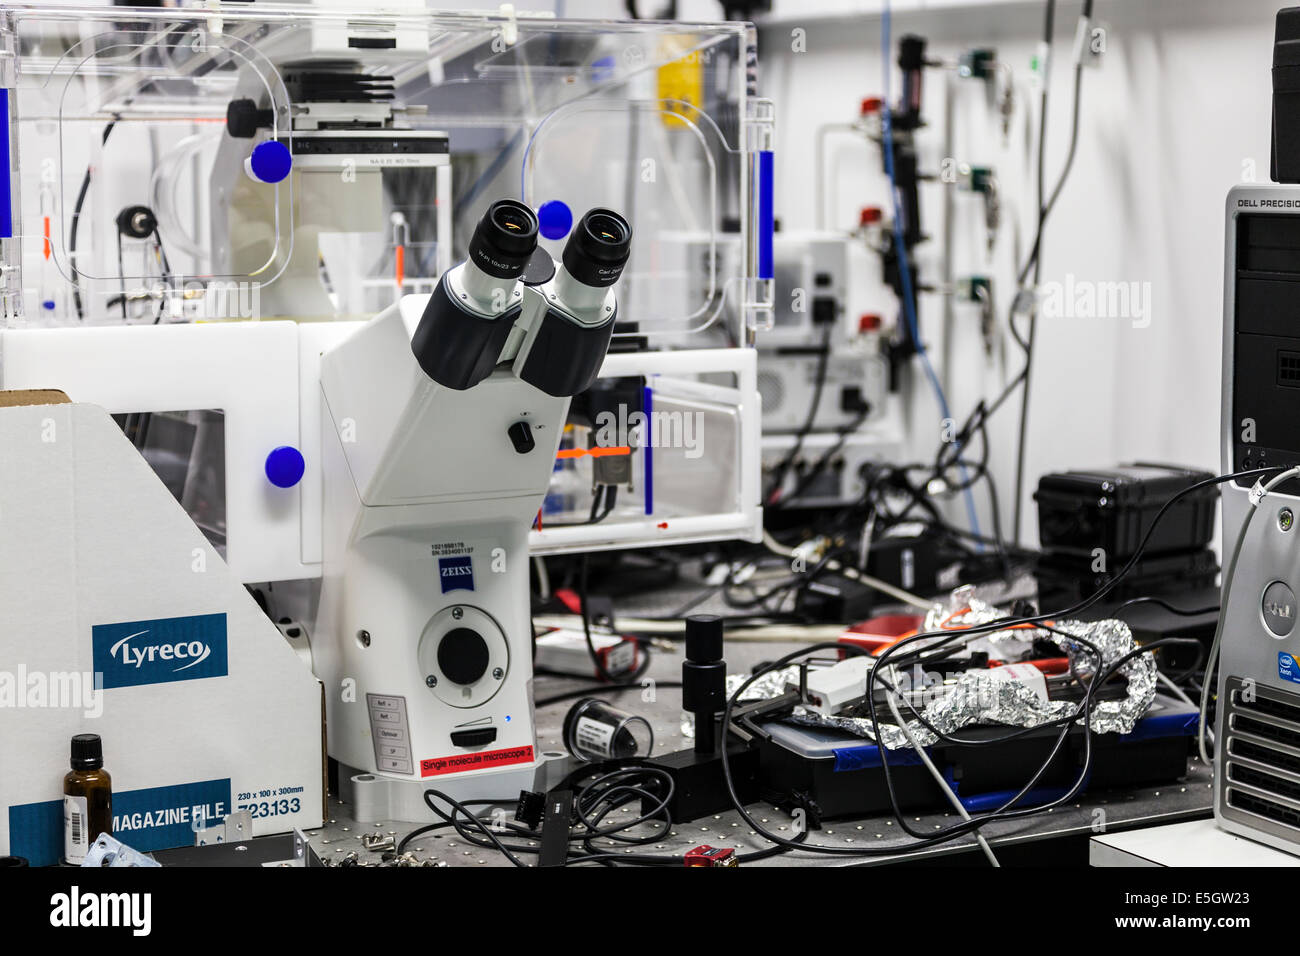 A sinlge molecule microscope on a laboratory bench. - Stock Image